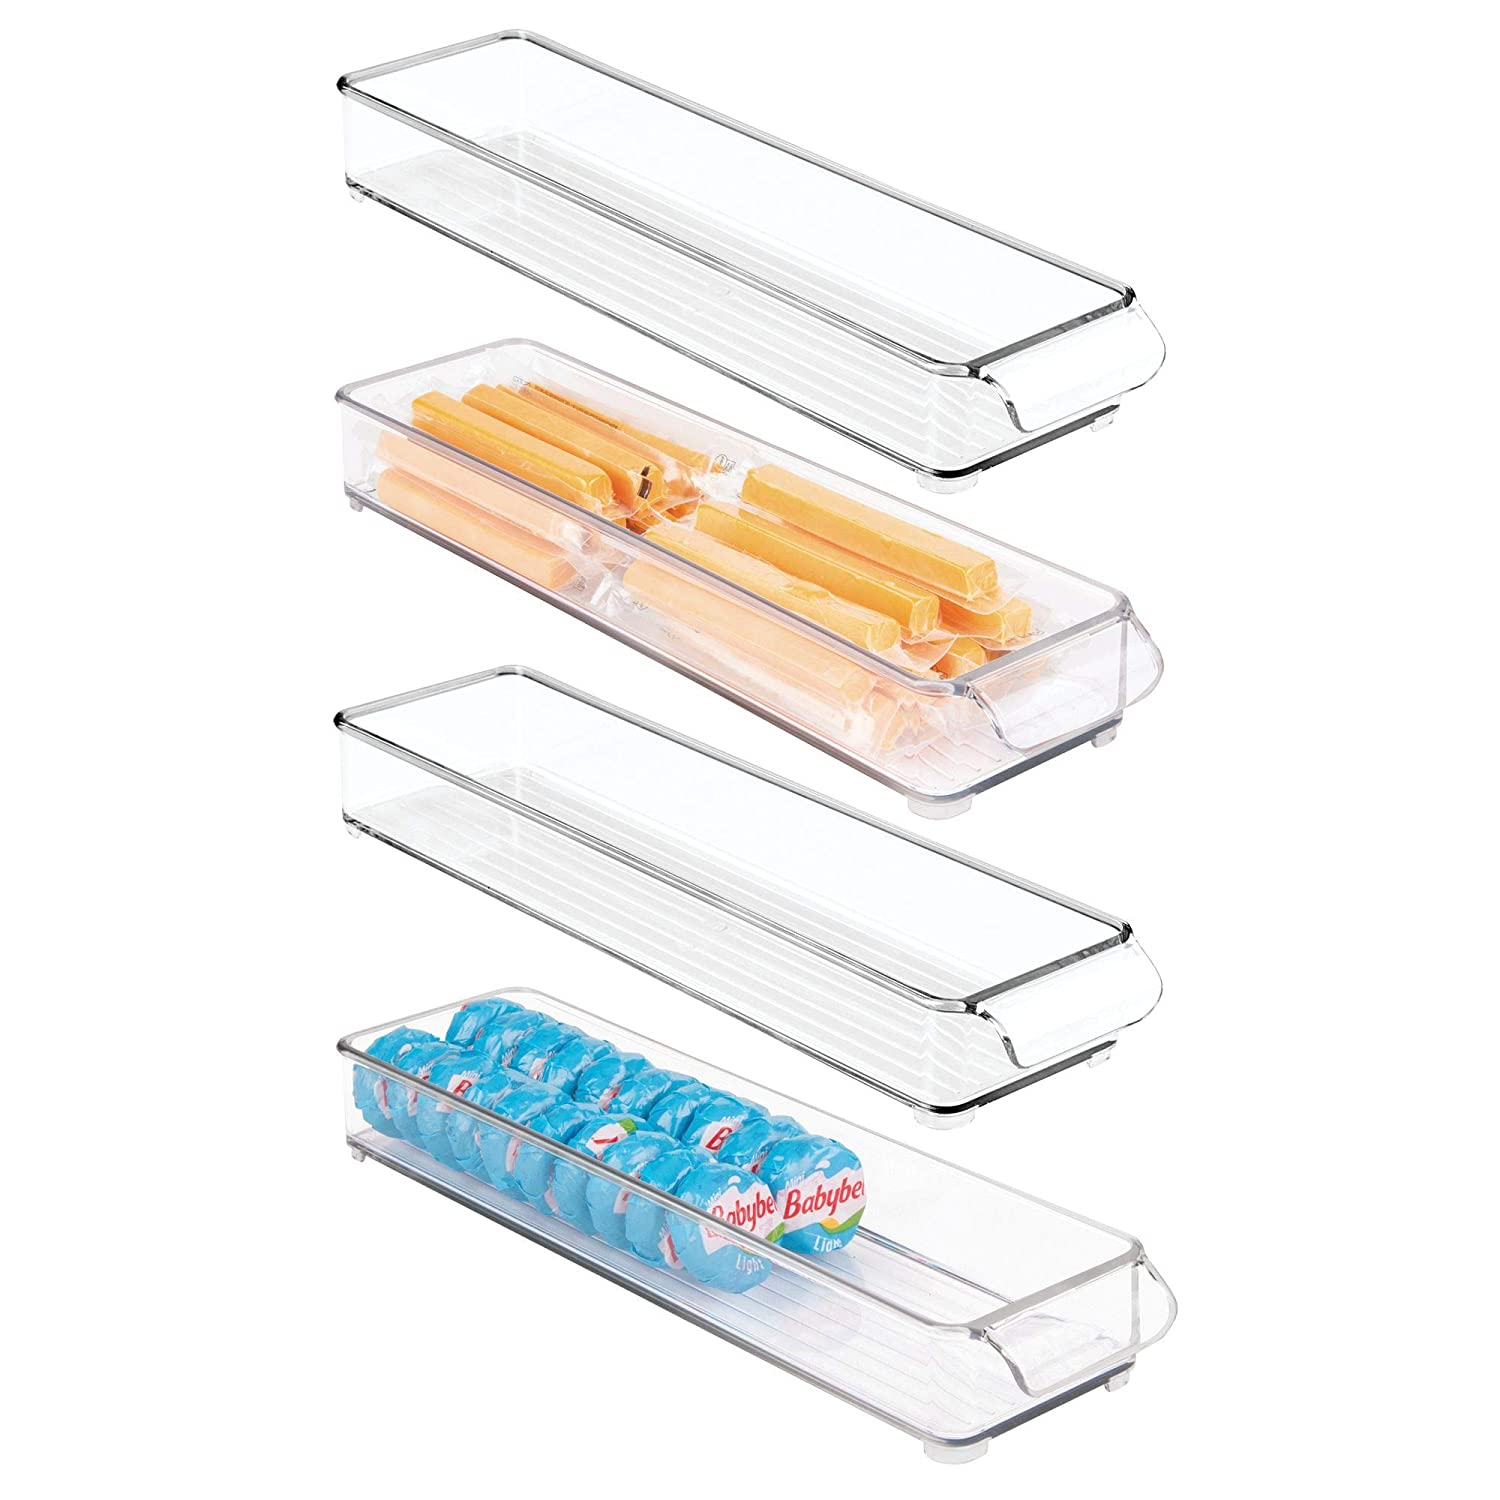 mDesign Stackable Storage Organizer Tray with Pull Front Handle for Kitchen, Pantry, Cabinet, Fridge/Freezer - Shallow Bin for Snacks, Produce, Vegetables, Pasta - BPA Free, Food Safe - 4 Pack, Clear